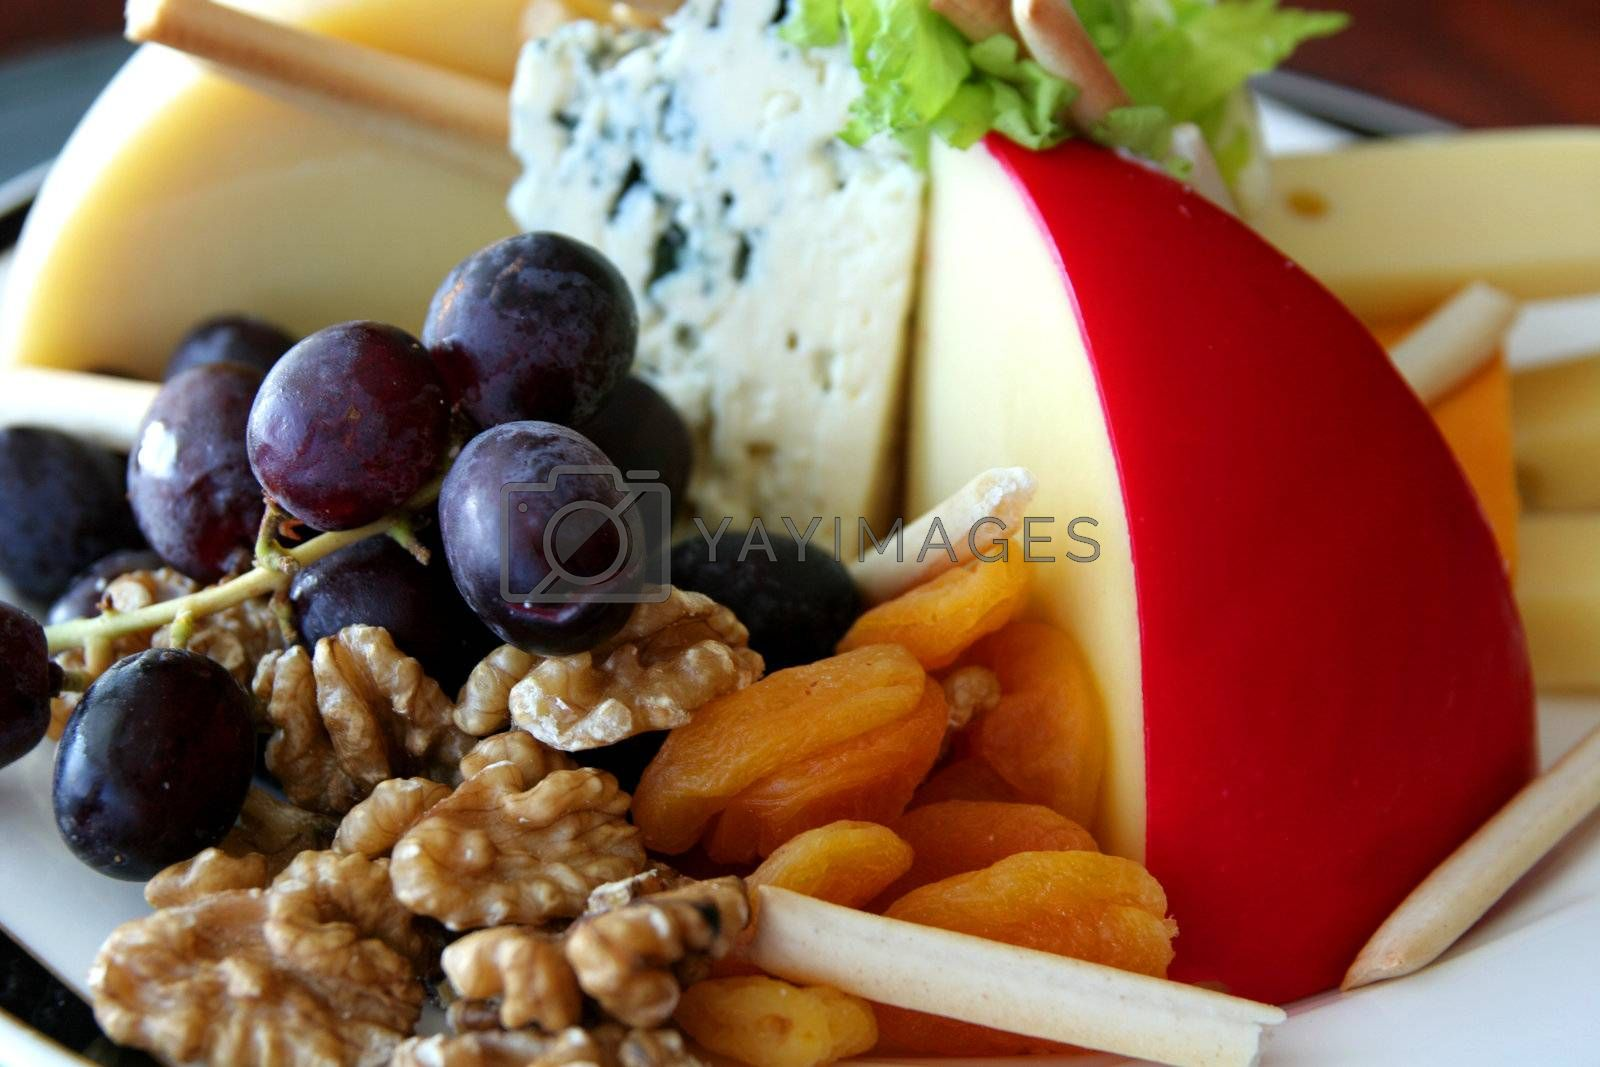 Fruit, Nuts, and Cheese by dbvirago